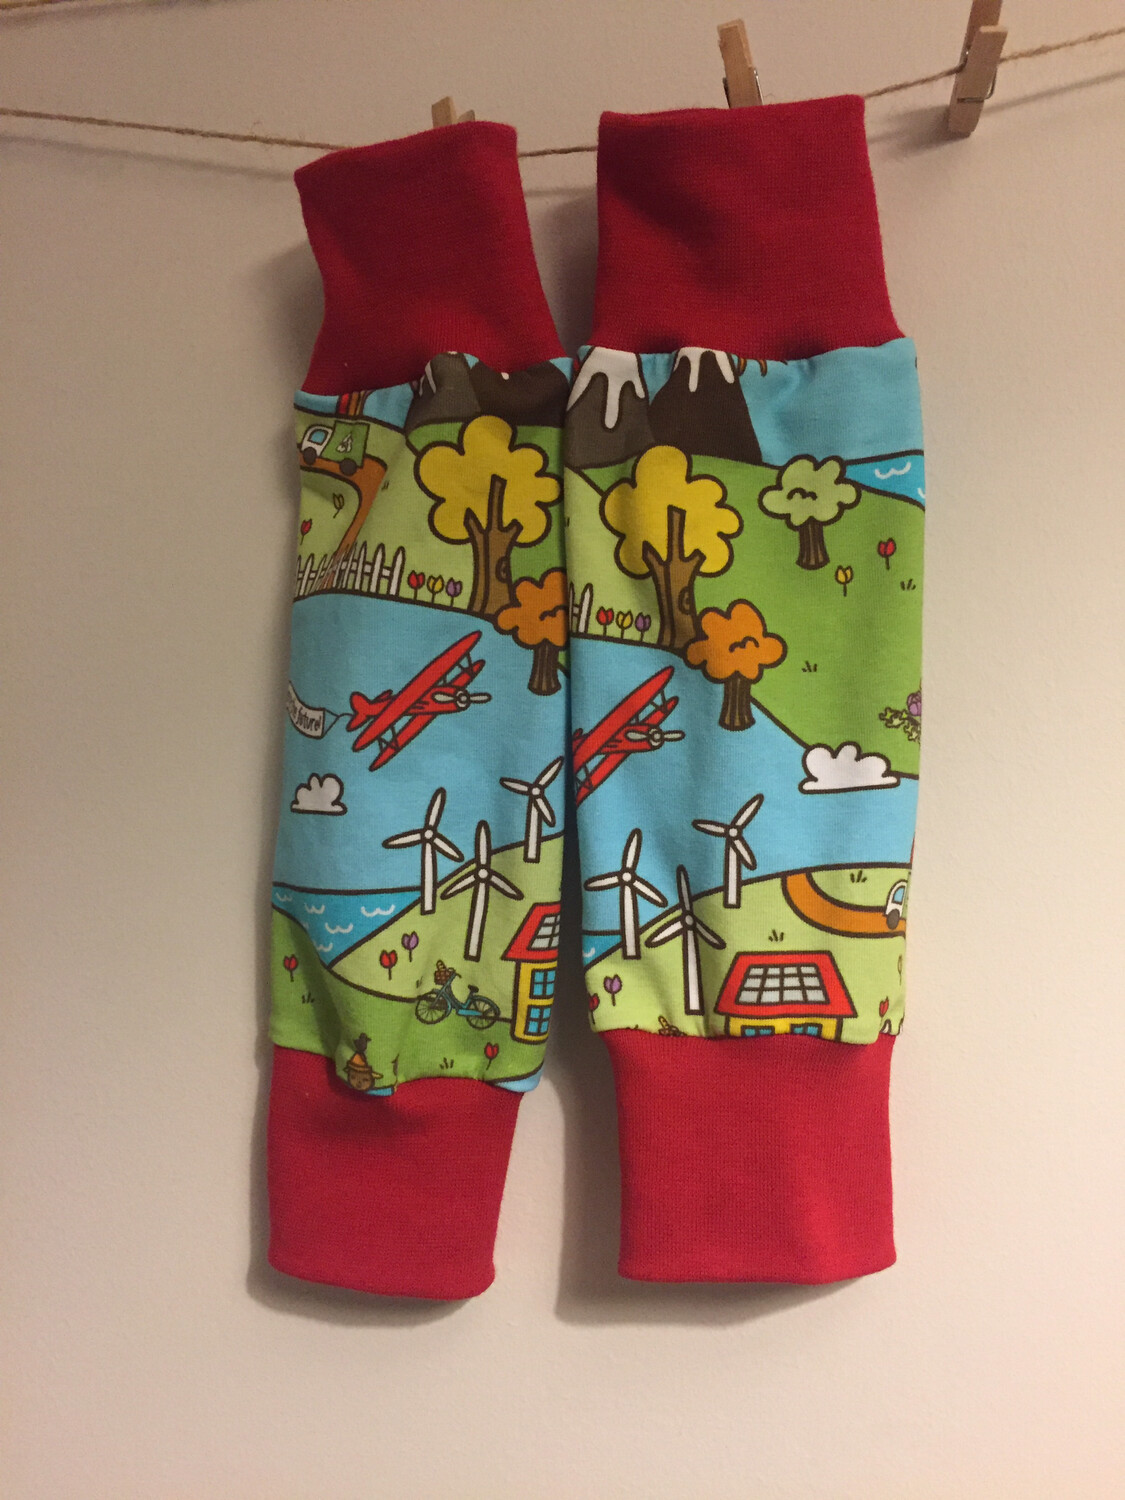 Mountains and Sea Baby Leg Warmers - alternative cuffs available